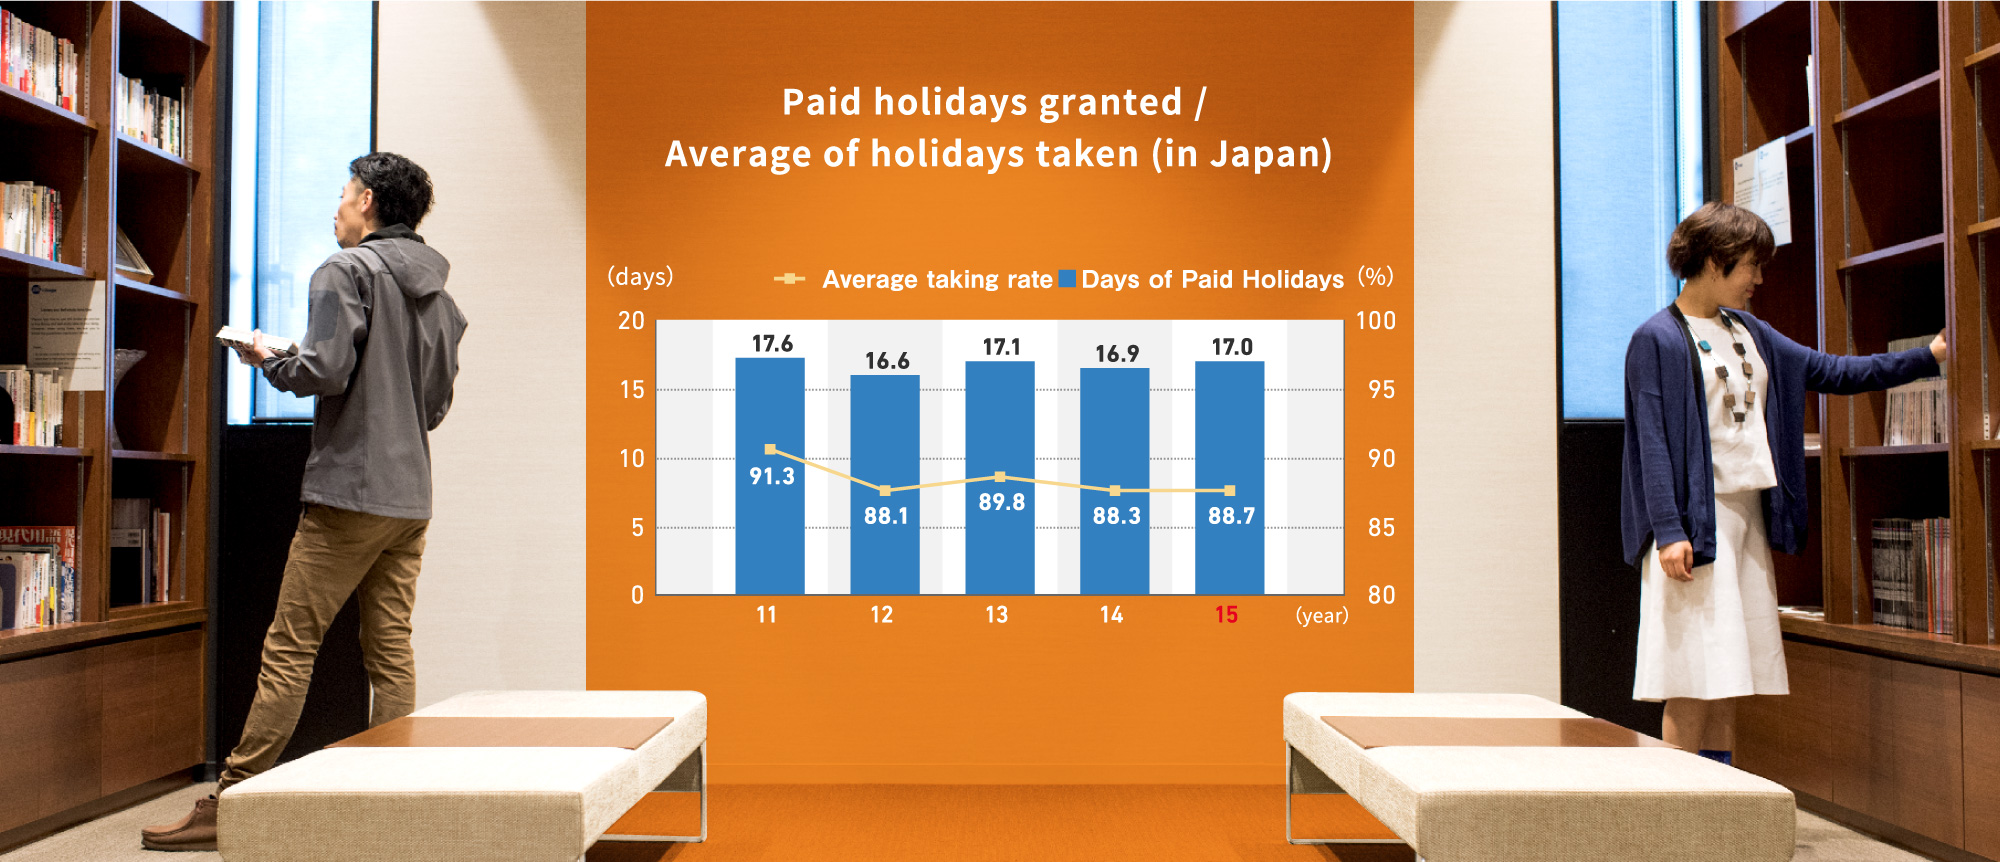 Paid holidays granted / Average of holidays taken (in Japan)